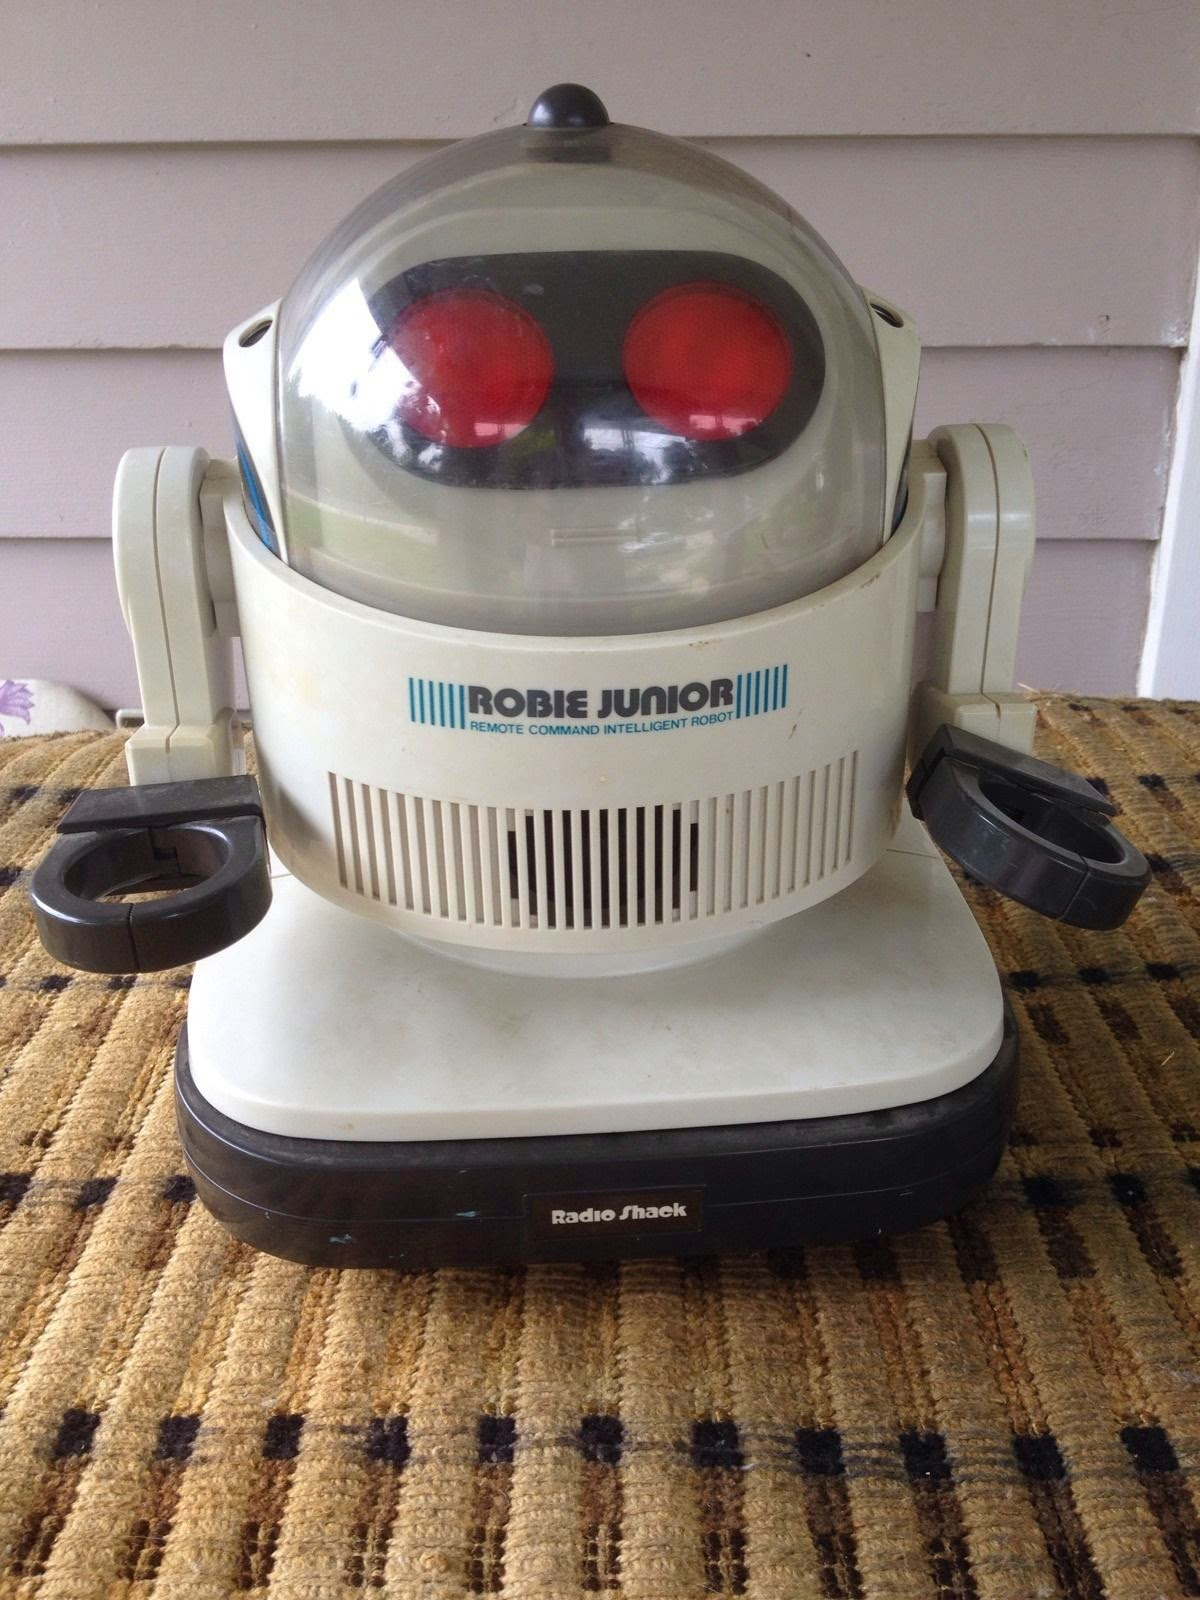 ROBIE JR. Robot by Radio Shack